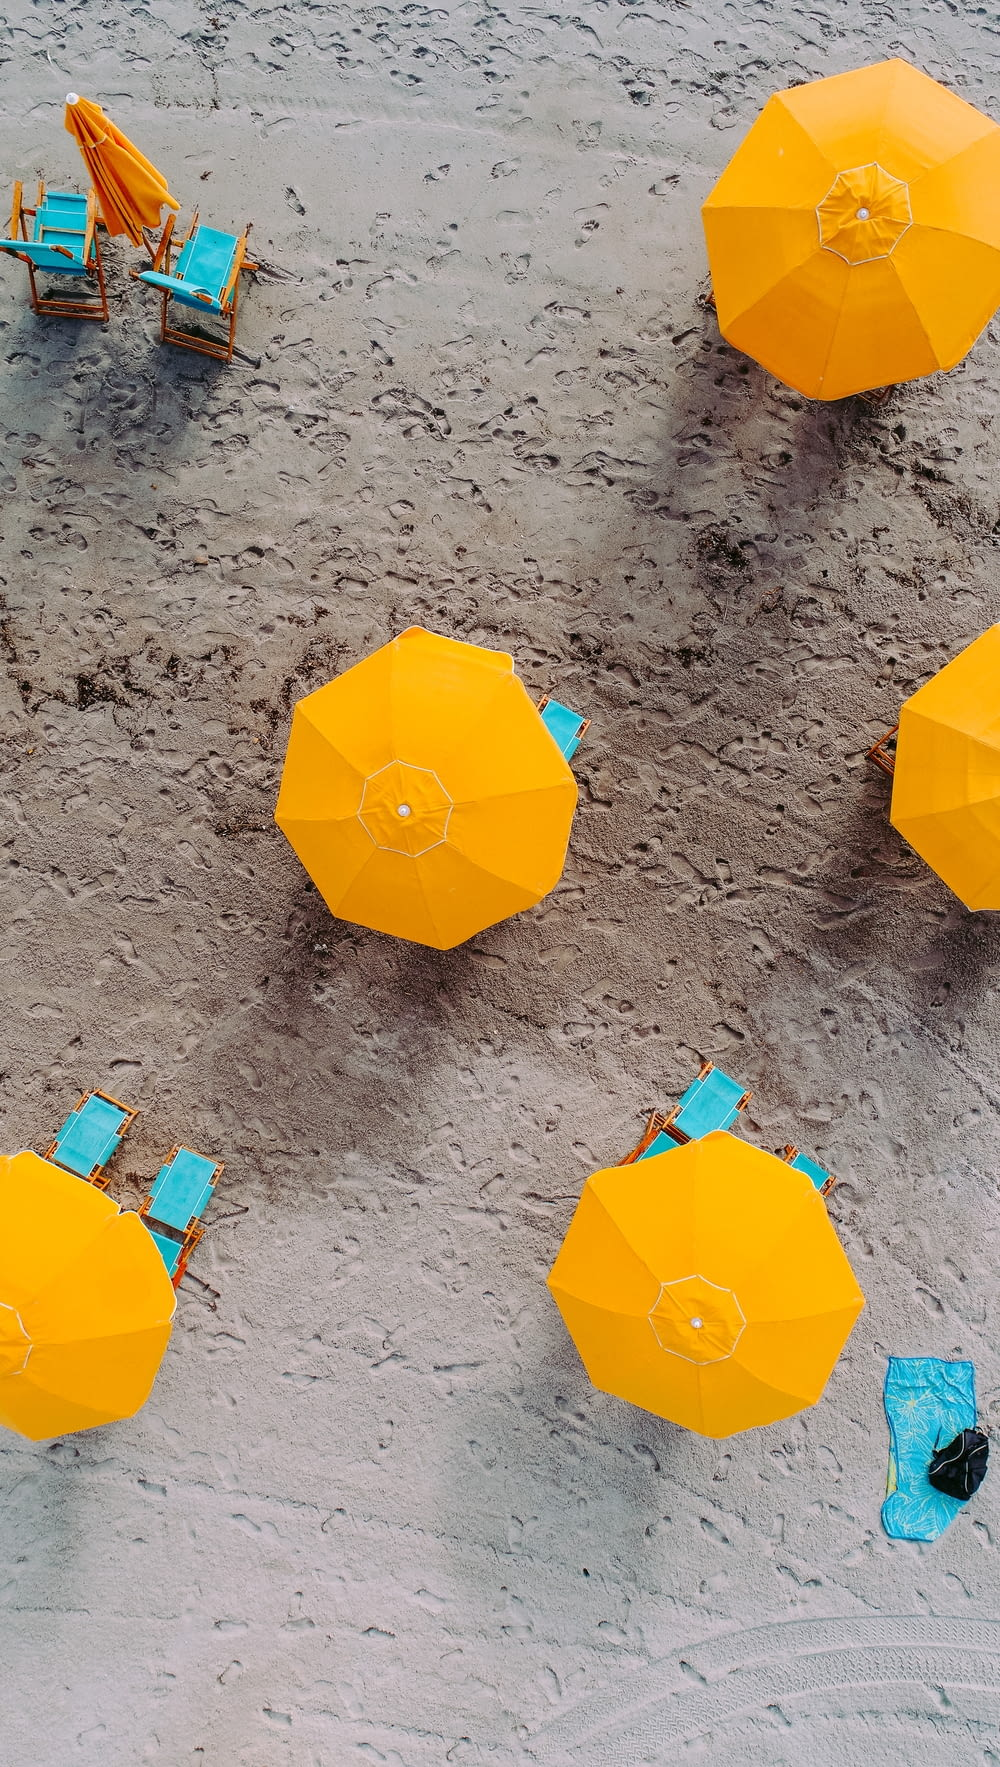 five yellow umbrellas on sand at daytime